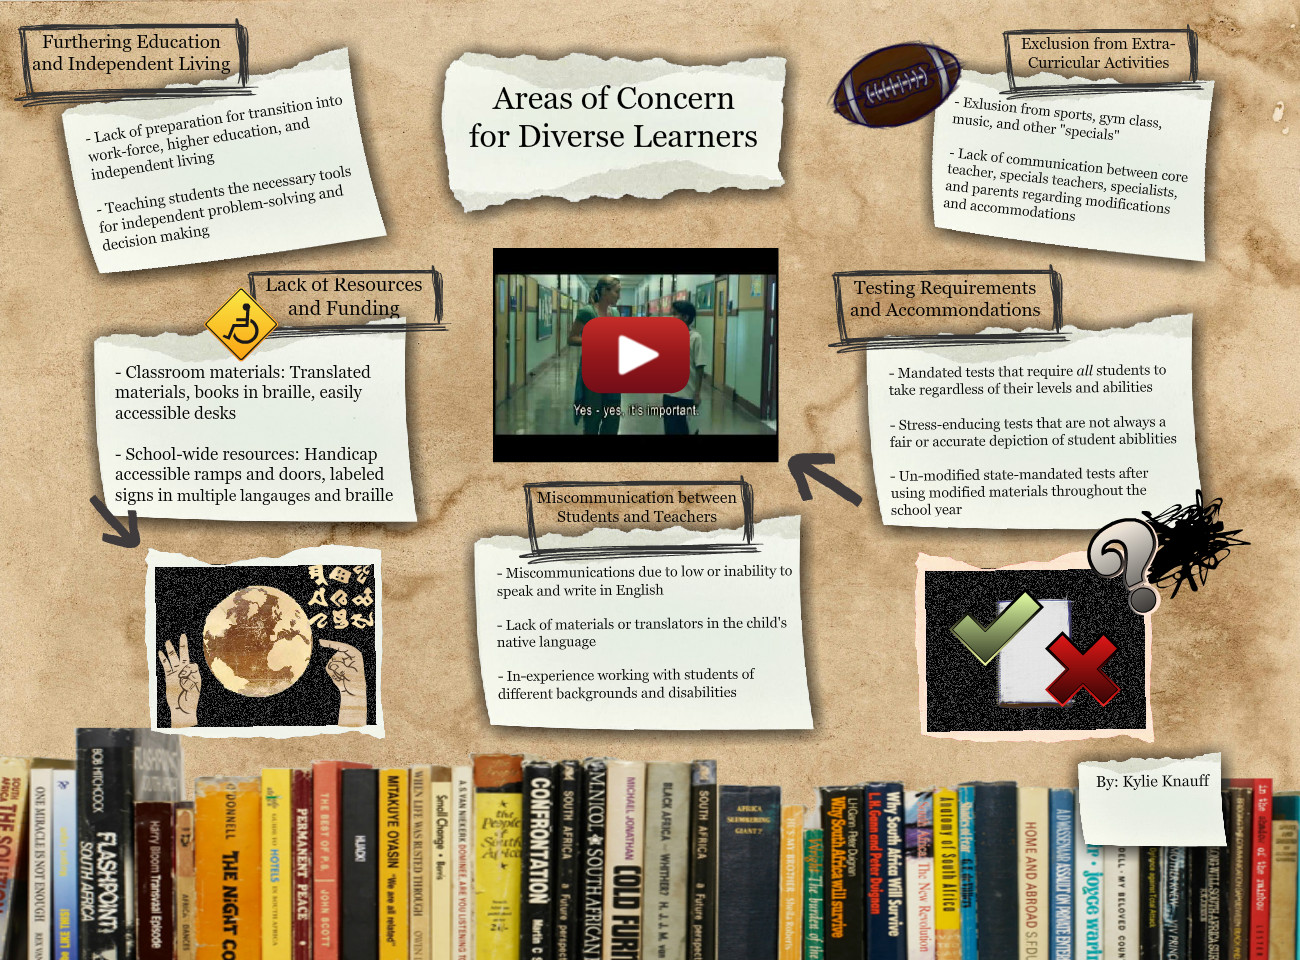 [2016] Kylie Knauff: Areas of Concerns for Diverse Learners